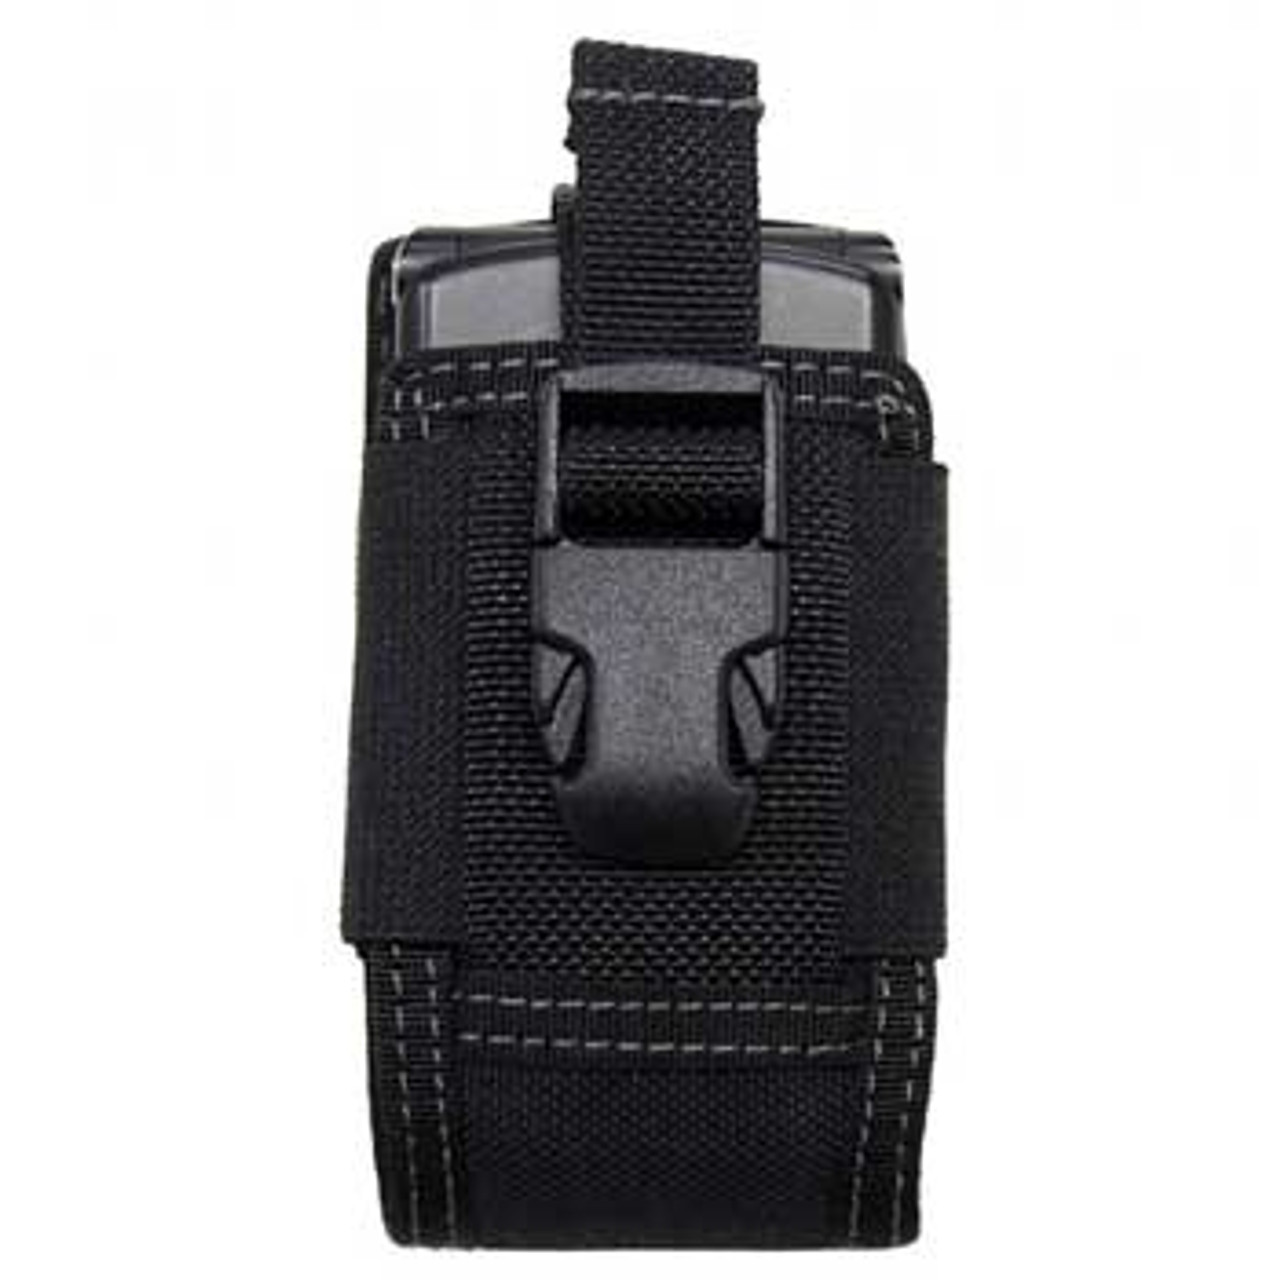 Maxpedition 4 in. Clip on Phone Holster| Color| Green